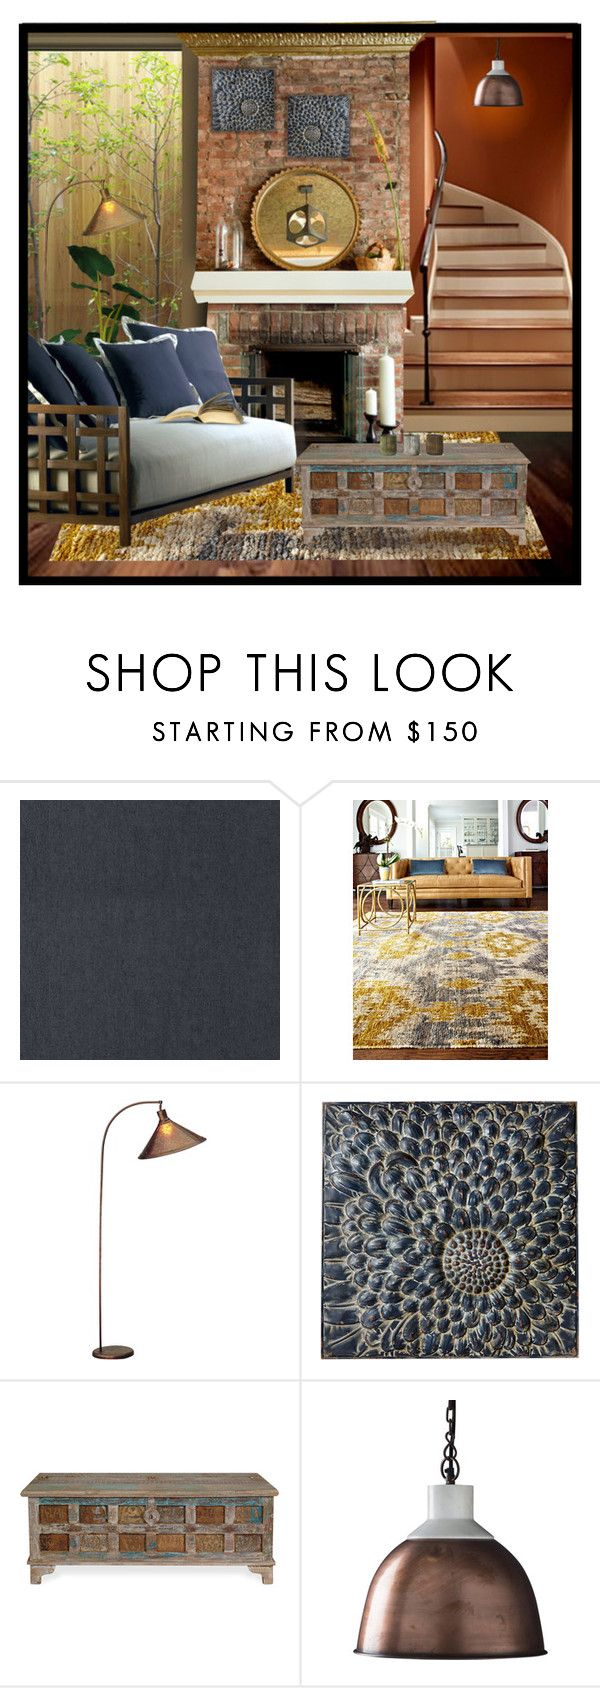 """""""Natural Retreat"""" by fortheloveofvintage ❤ liked on Polyvore featuring interior, interiors, interior design, home, home decor, interior decorating, ARTE, Cal Lighting, Dot & Bo and NKUKU"""